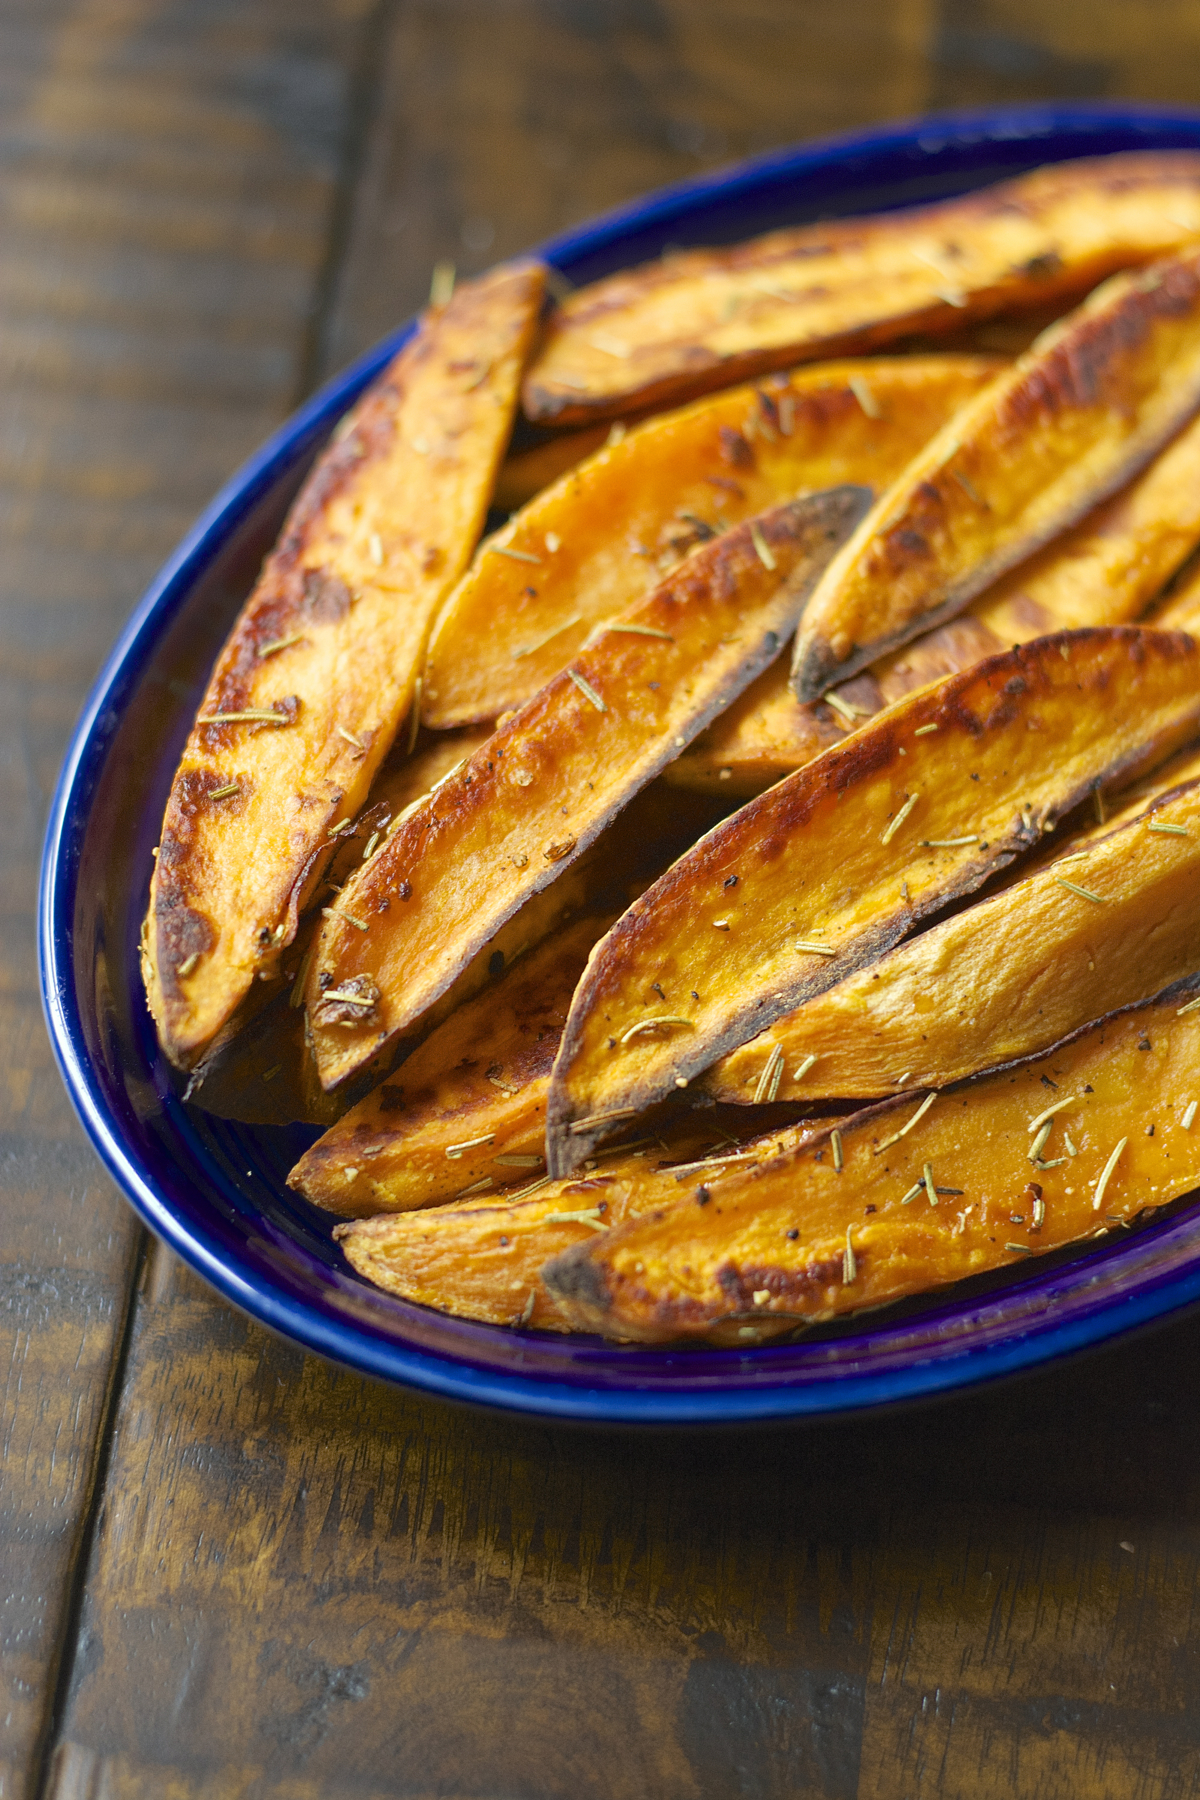 baked sweet potato wedges in a blue dish